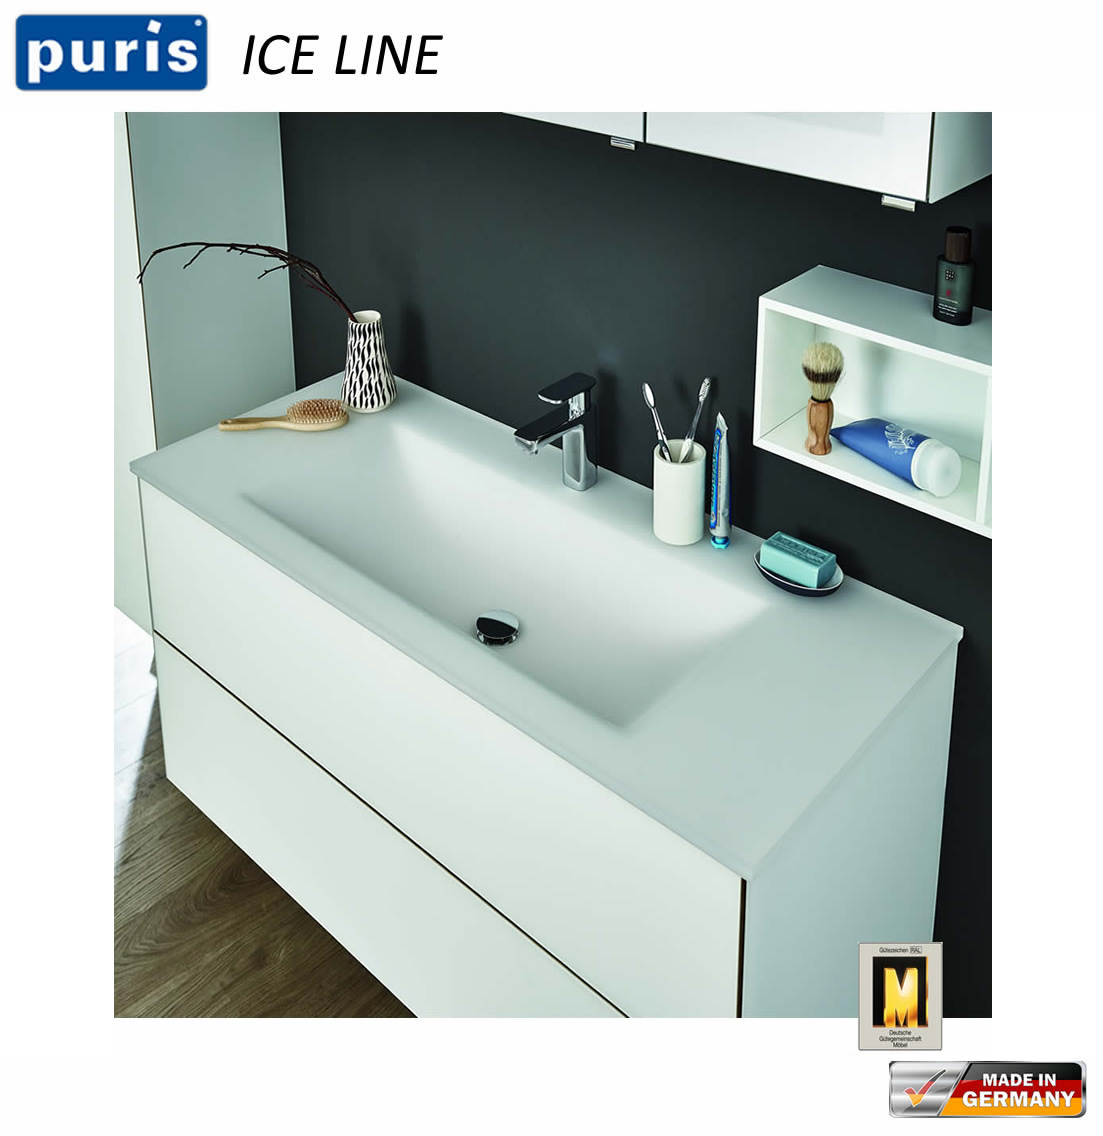 puris ice line waschtisch set 90 cm mit glas waschtisch. Black Bedroom Furniture Sets. Home Design Ideas